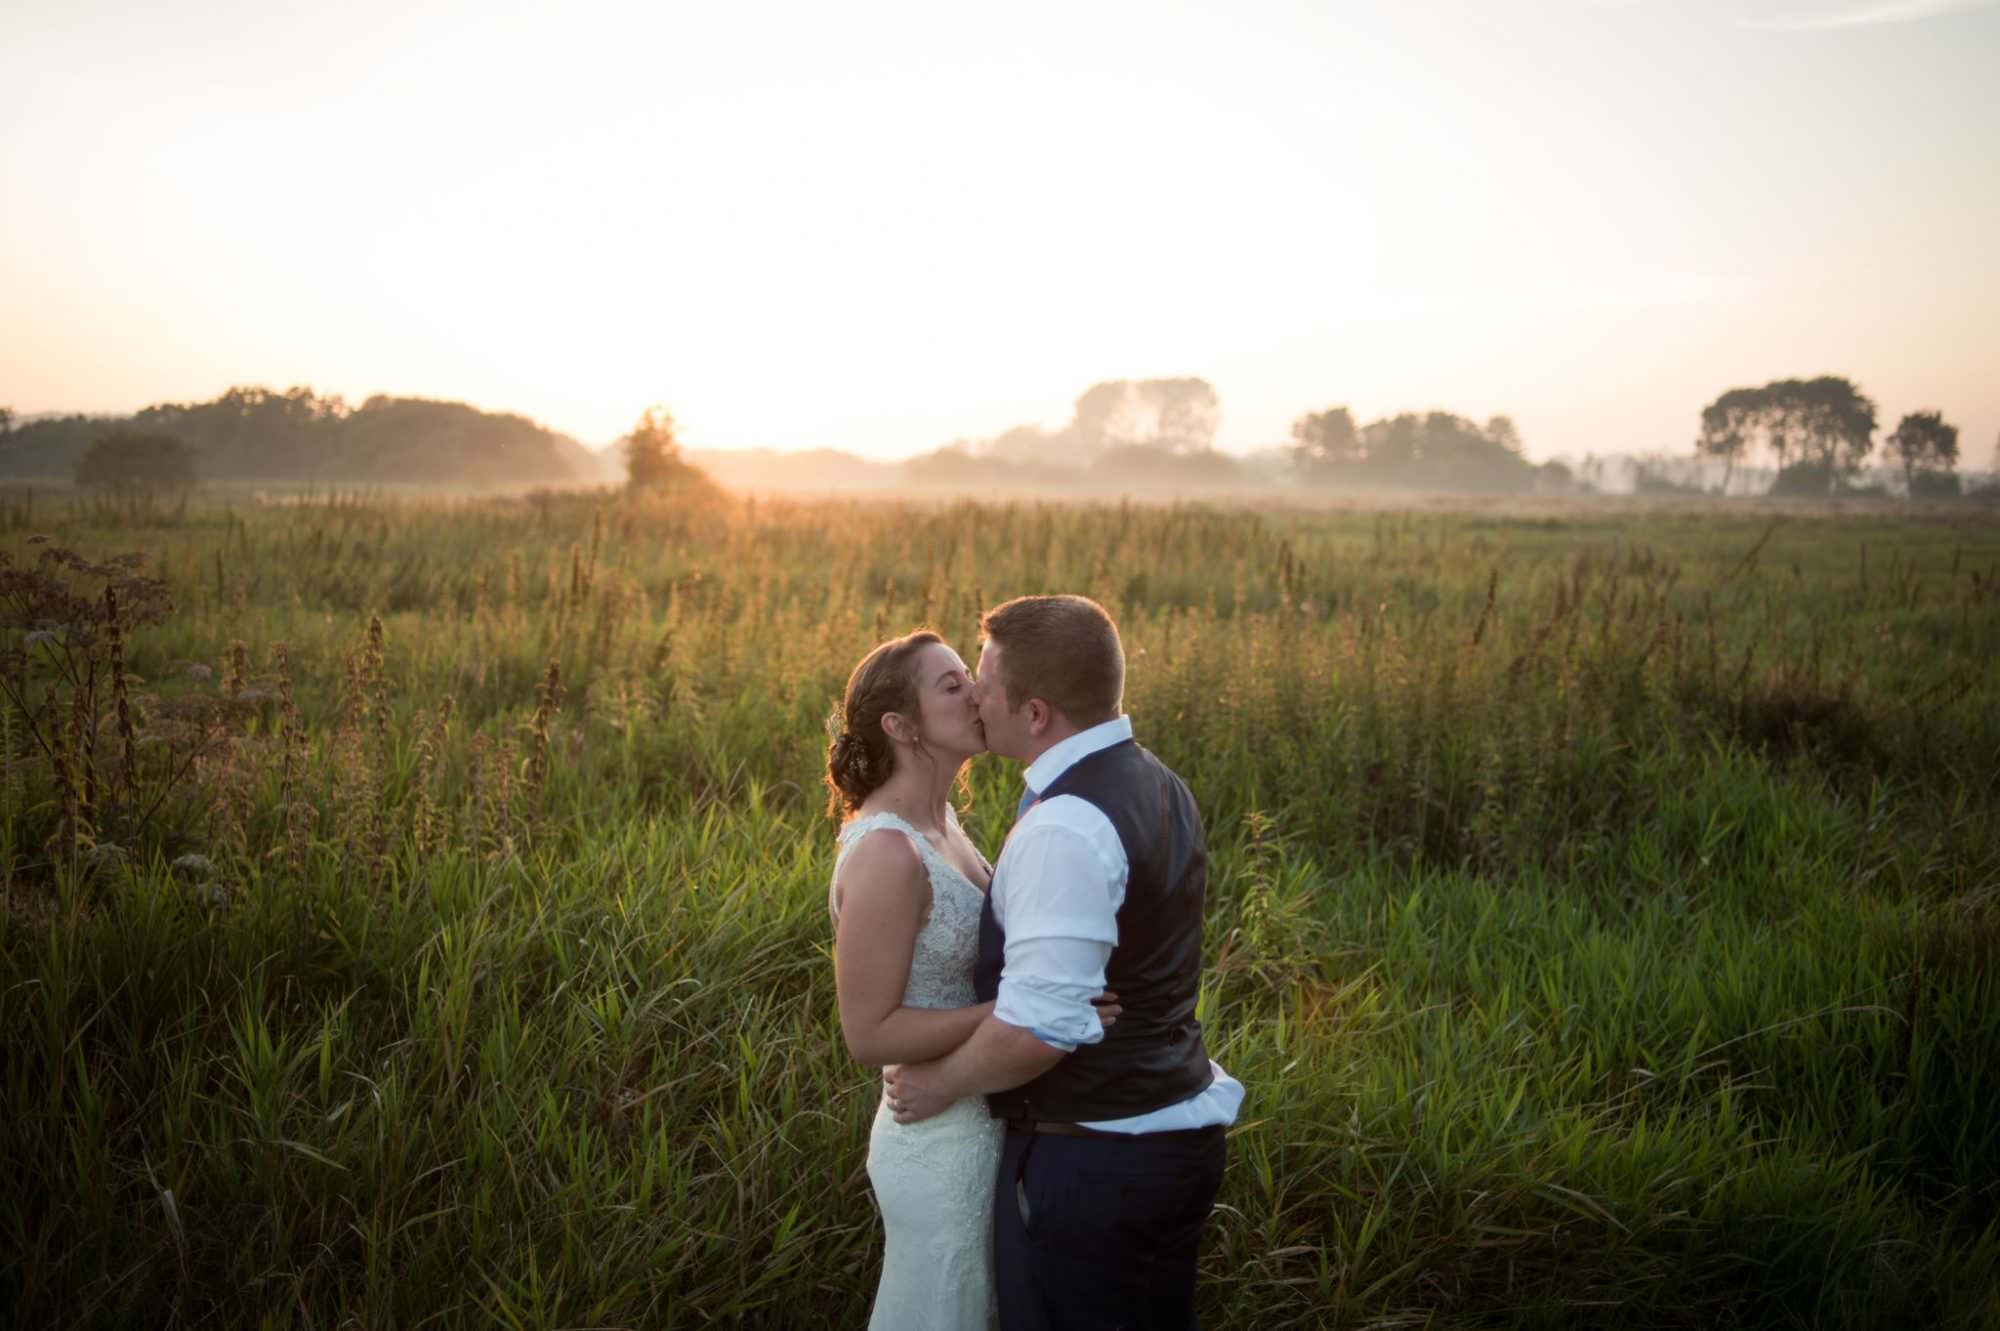 Golden hour wedding photography at Sopley Mill